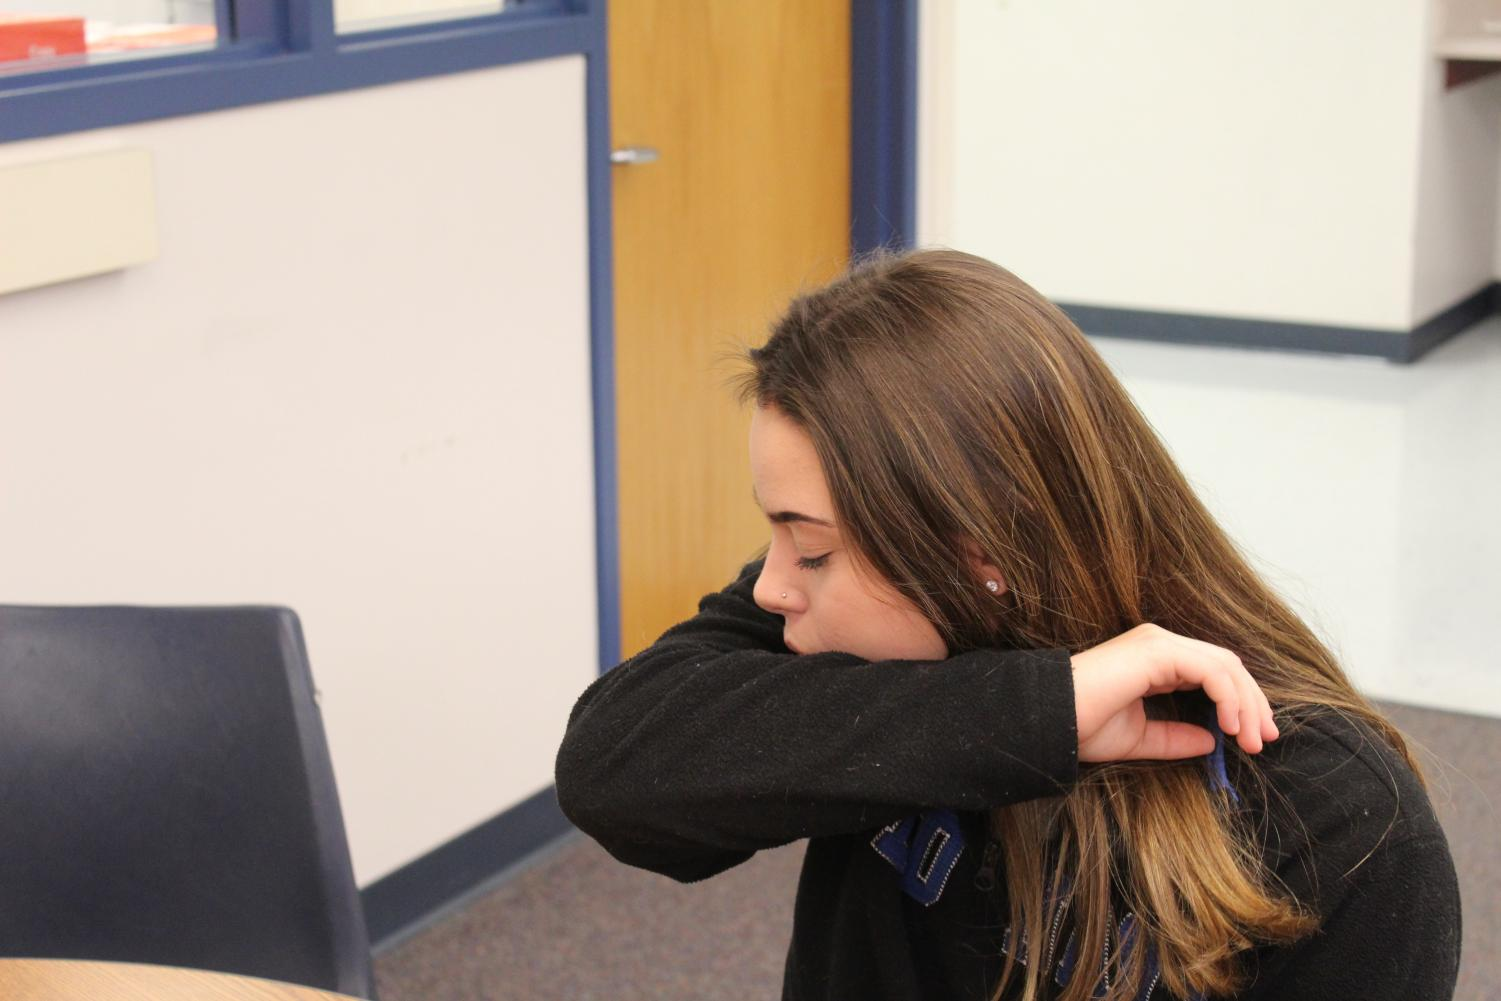 North Platte High school students frequently experience cold like symptoms. Some students were concerned about deciding whether or not their cold-like symptoms could be Pertussis related.